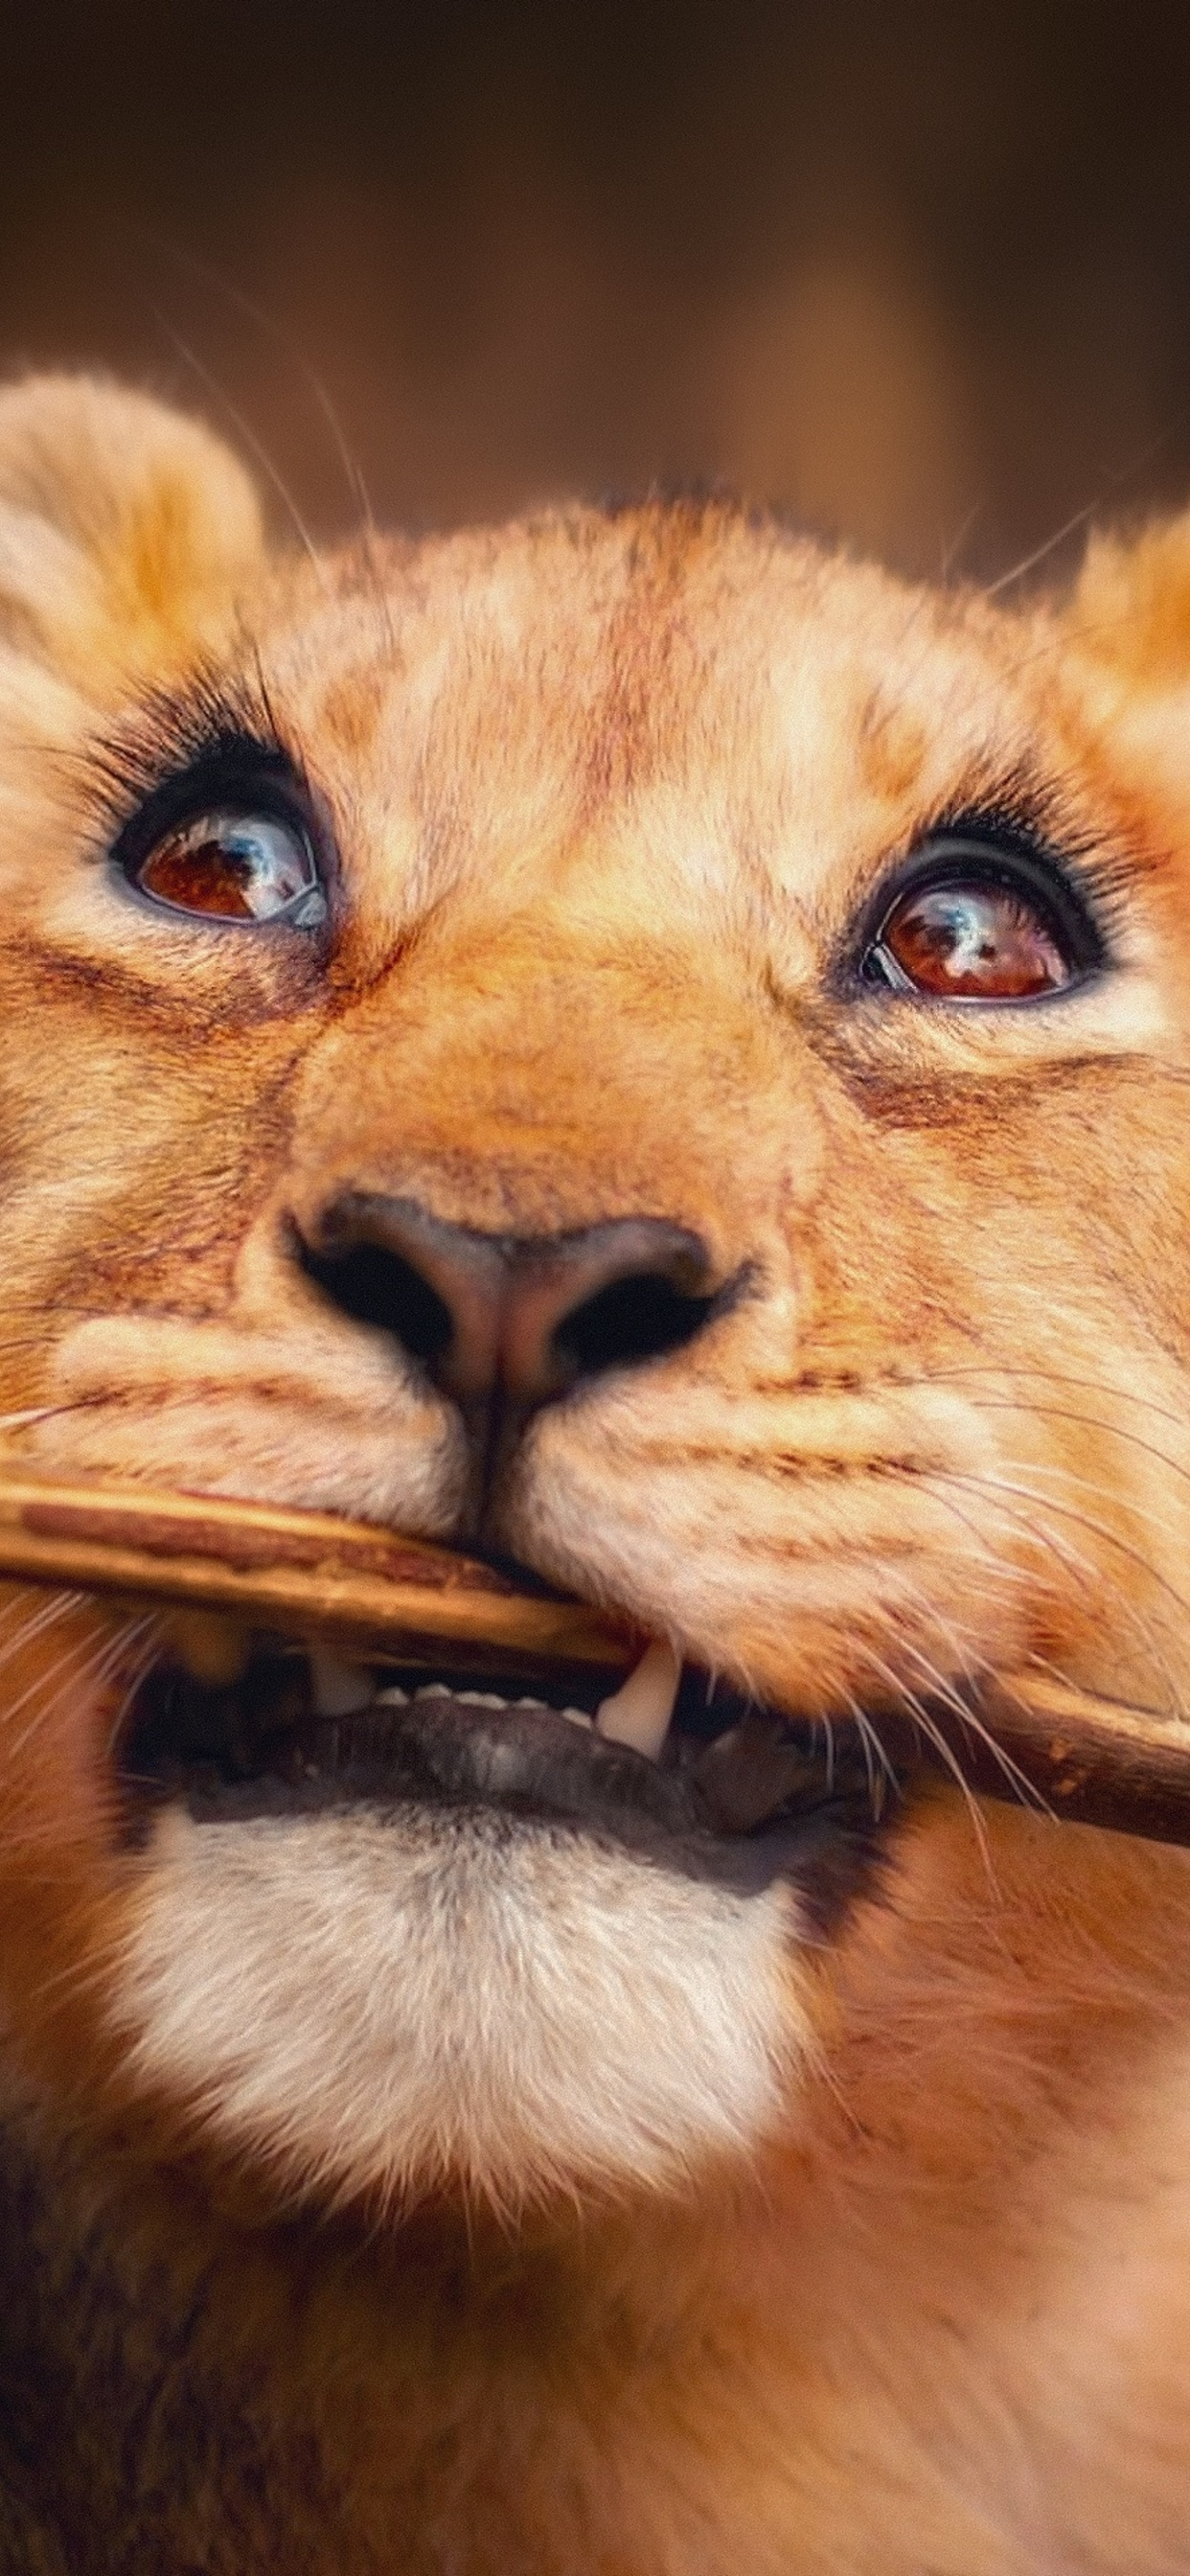 1242x2688 Lion Cub Iphone Xs Max Hd 4k Wallpapers Images